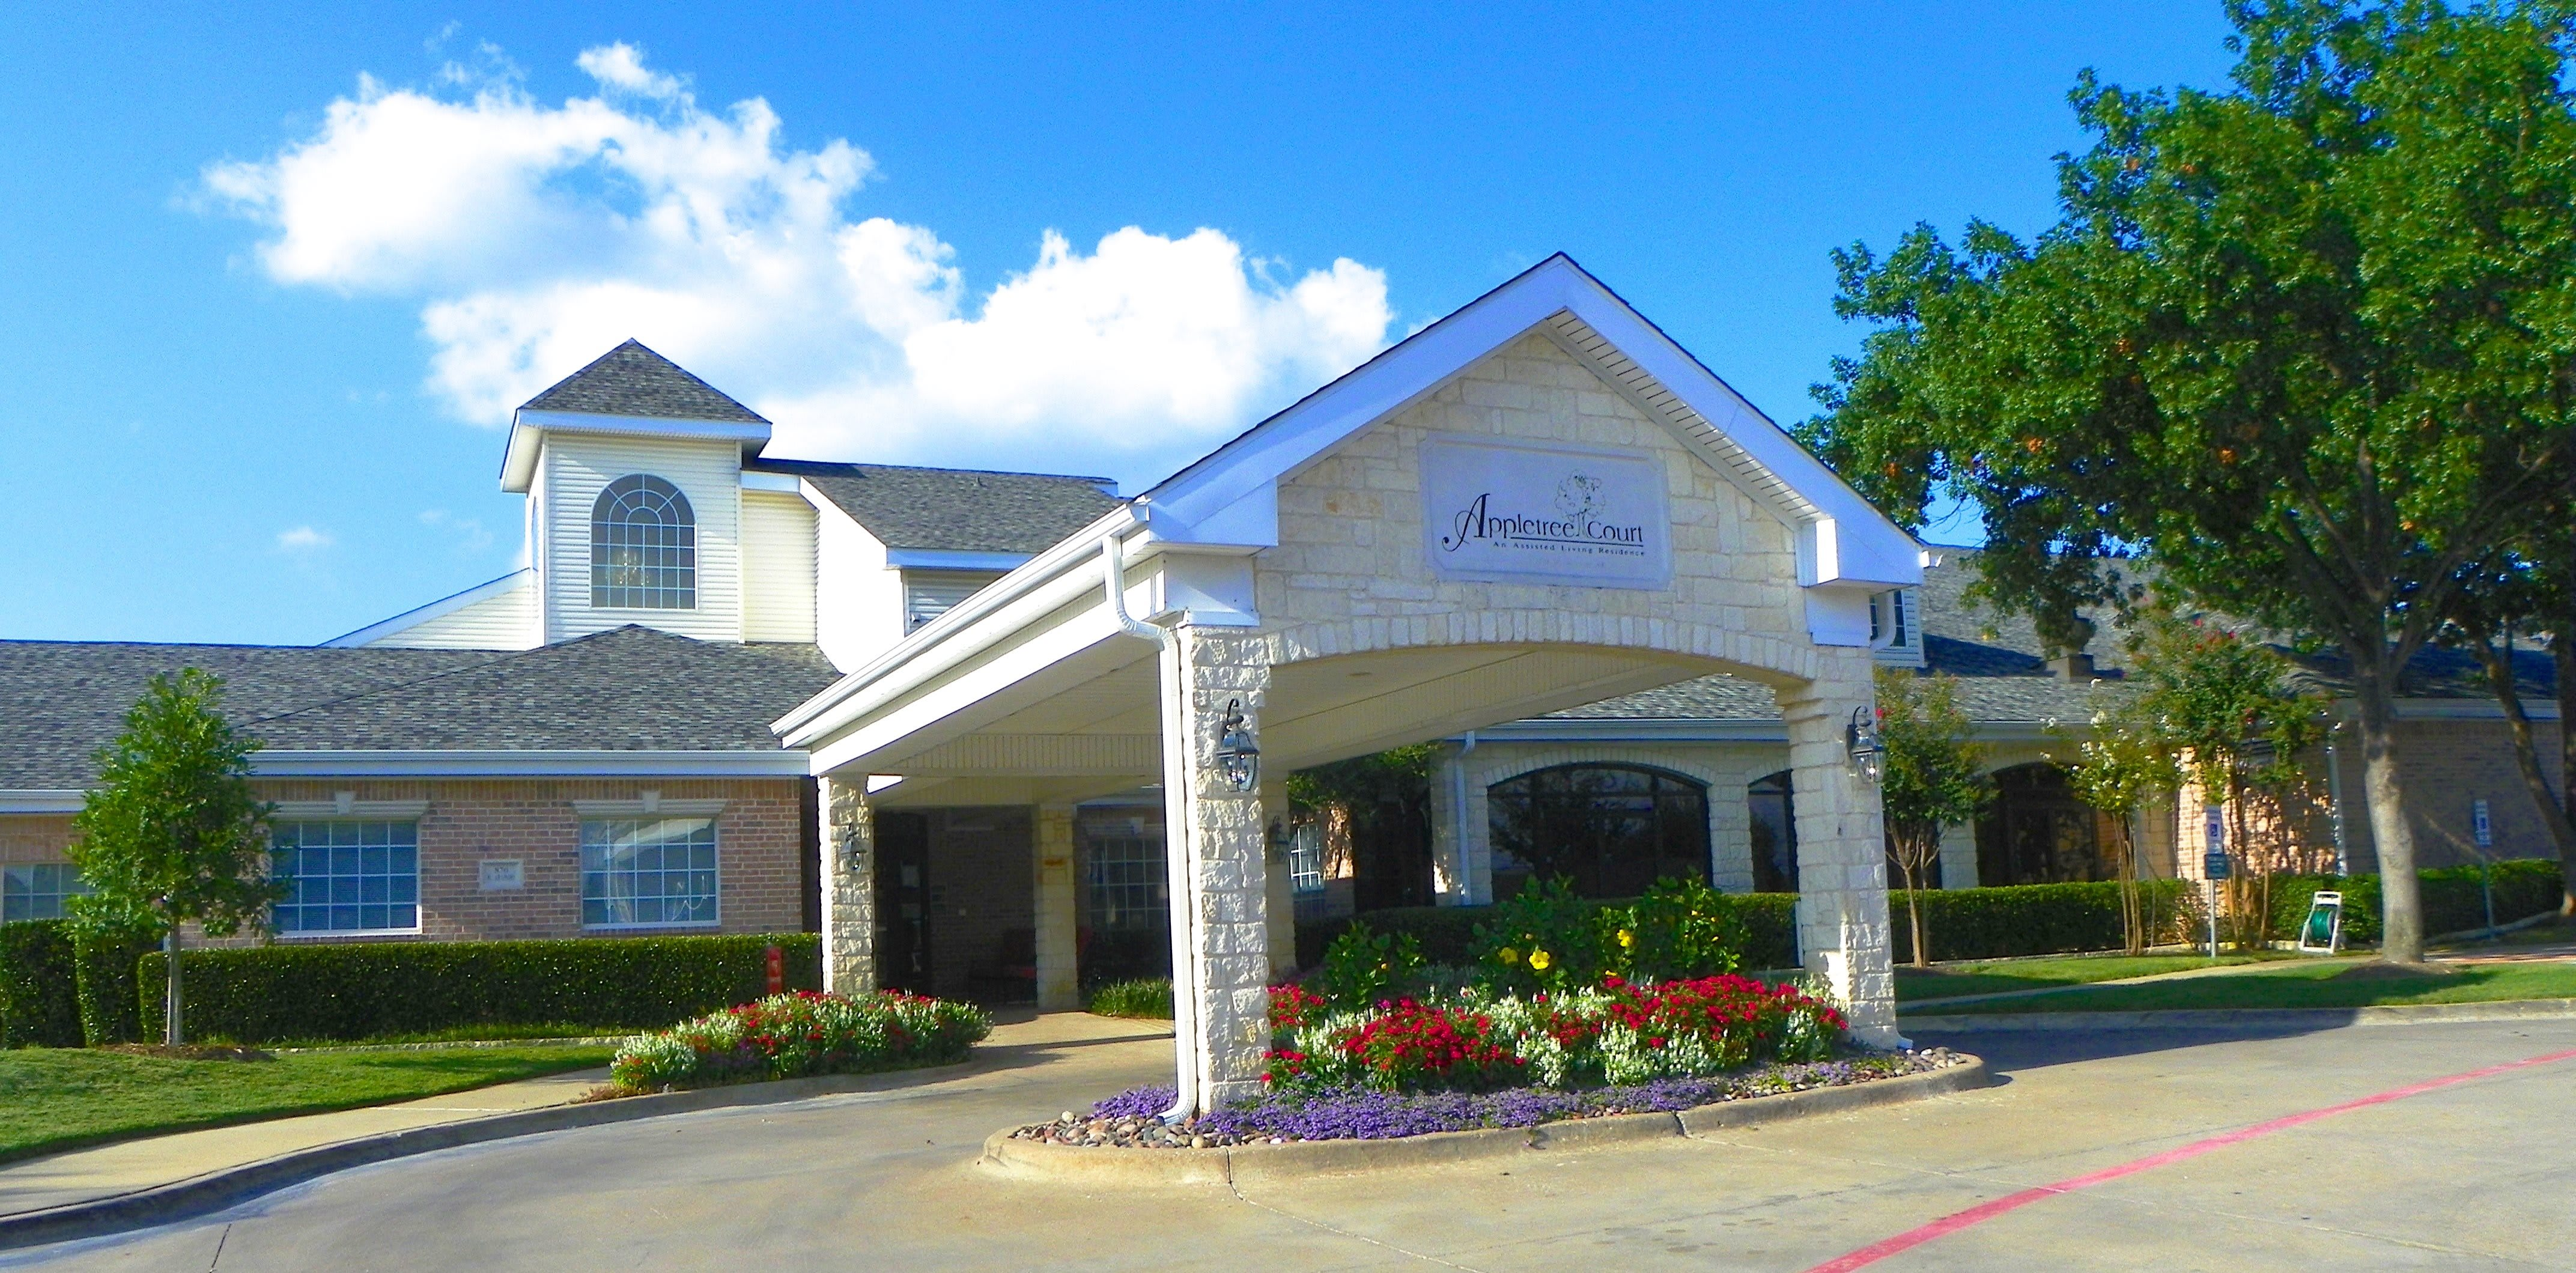 Photo 1 of Appletree Court Assisted Living